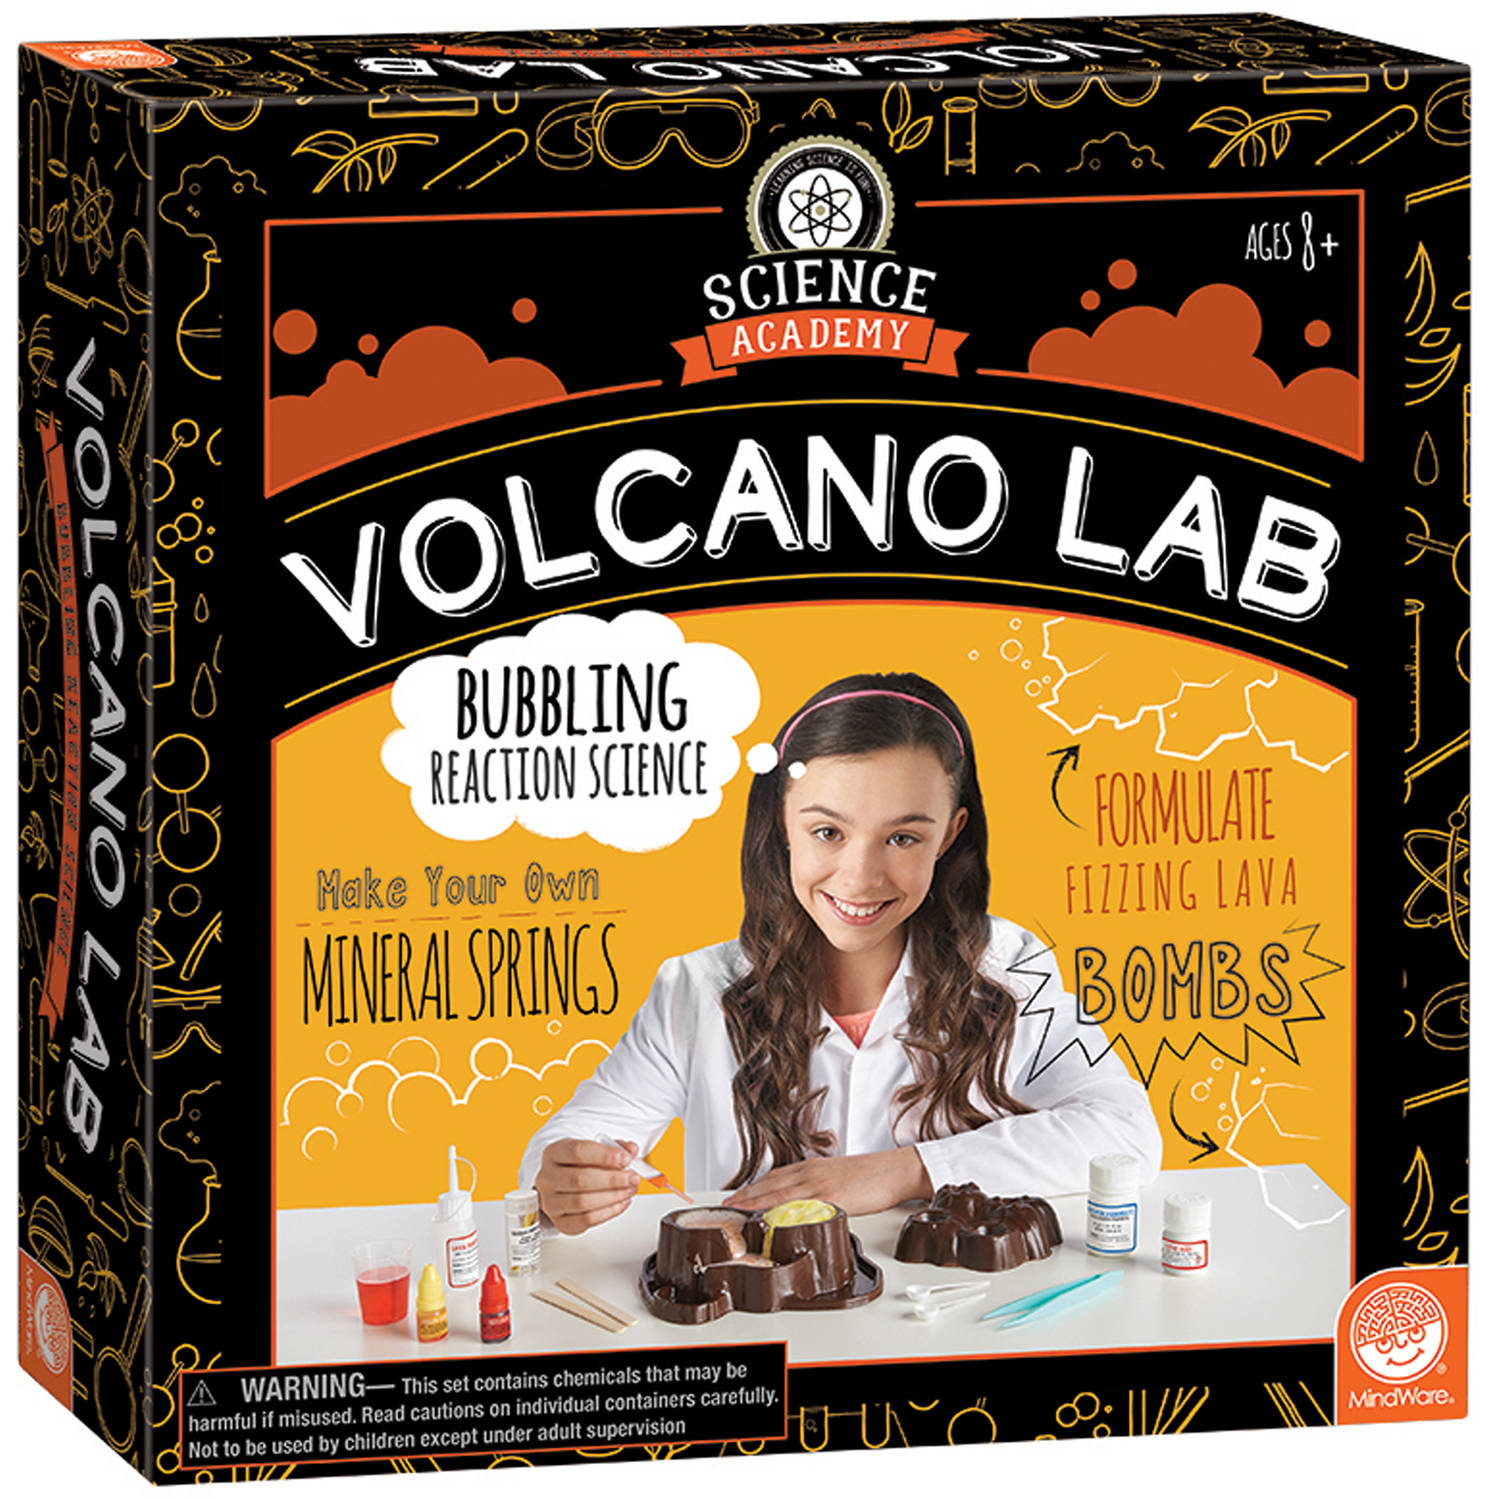 Science Academy Volcano Lab